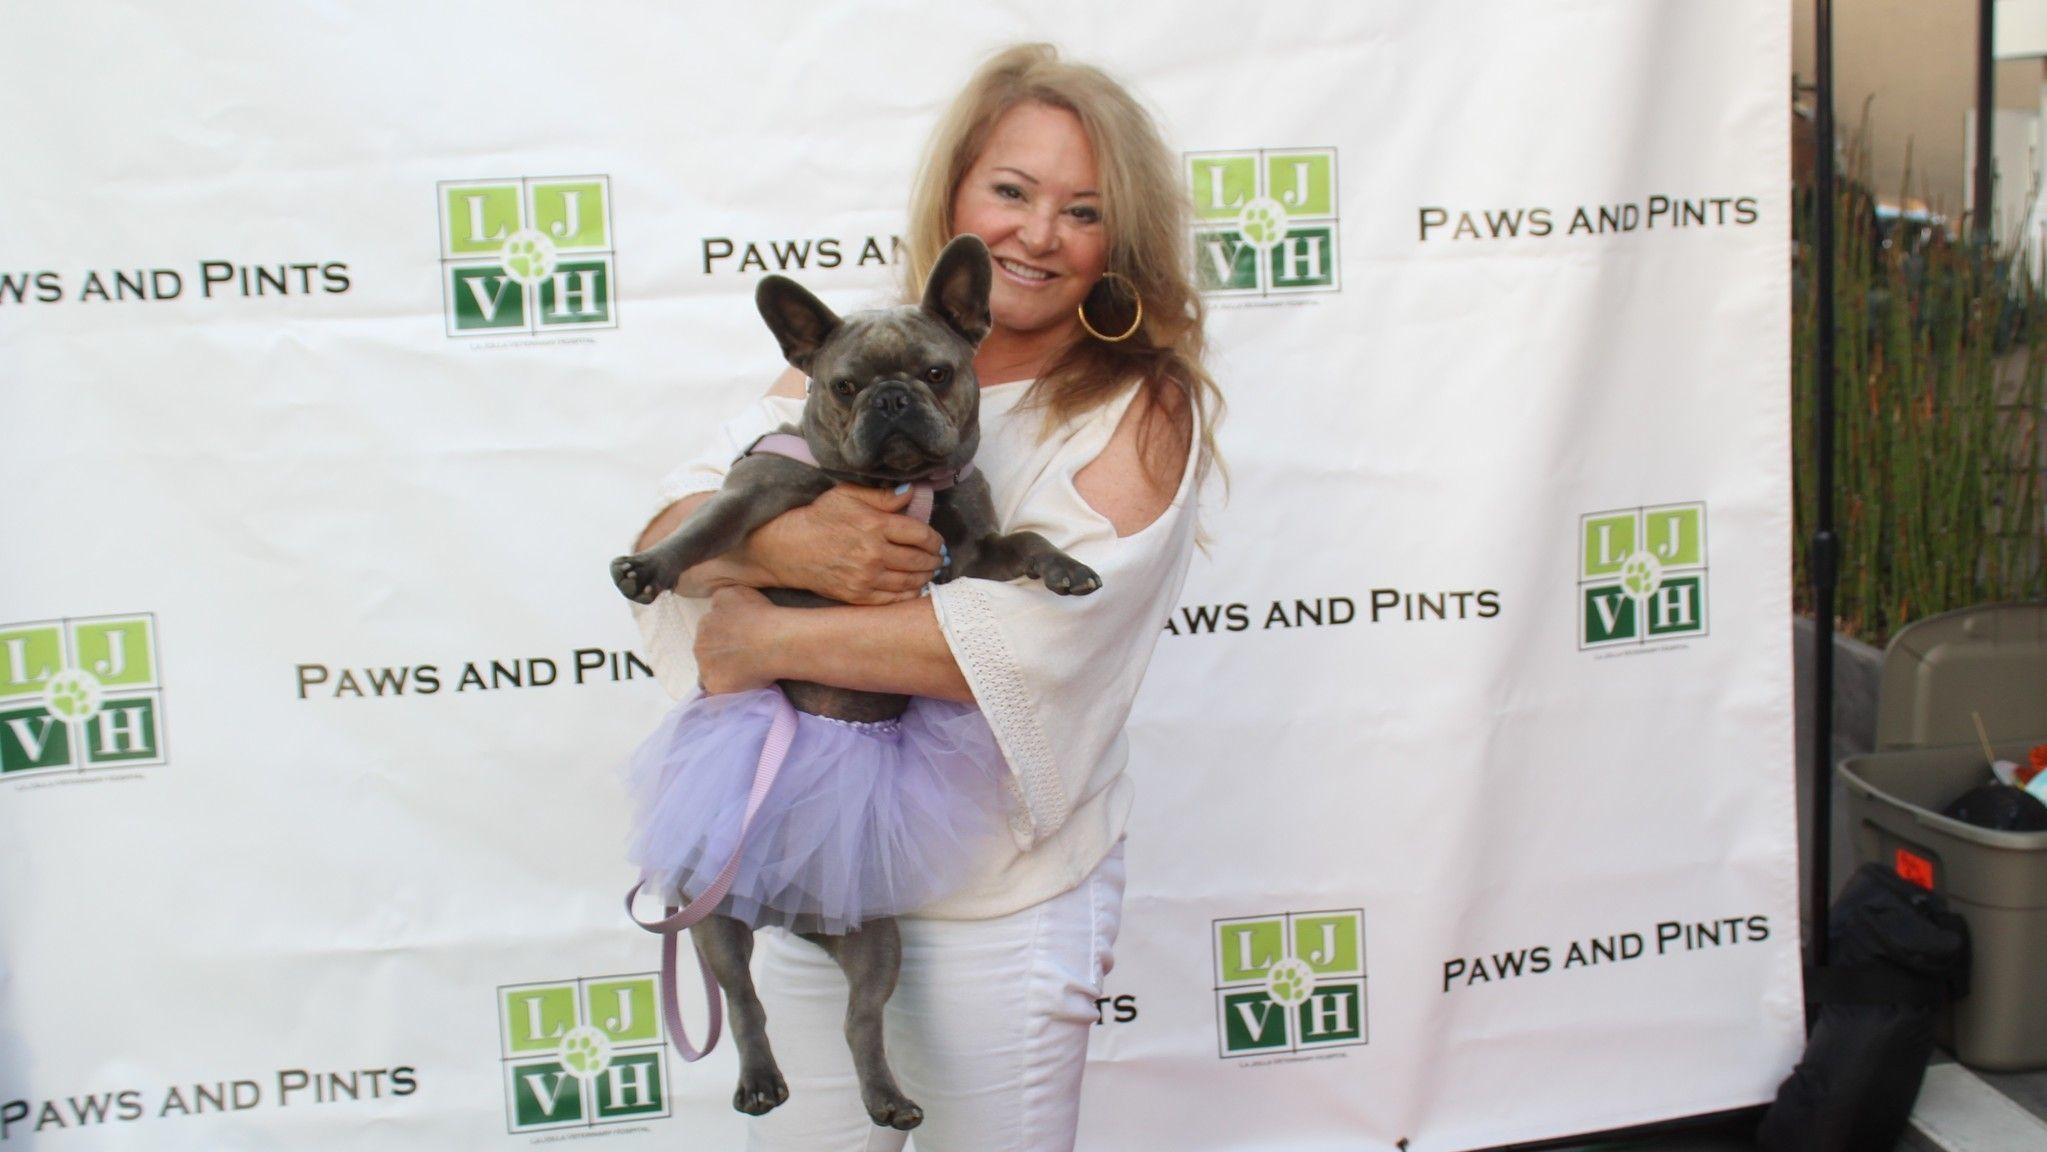 La Jolla resident Jerri Hunt arrives with Bella Bleu the French Bulldog, who looks thrilled to be here.